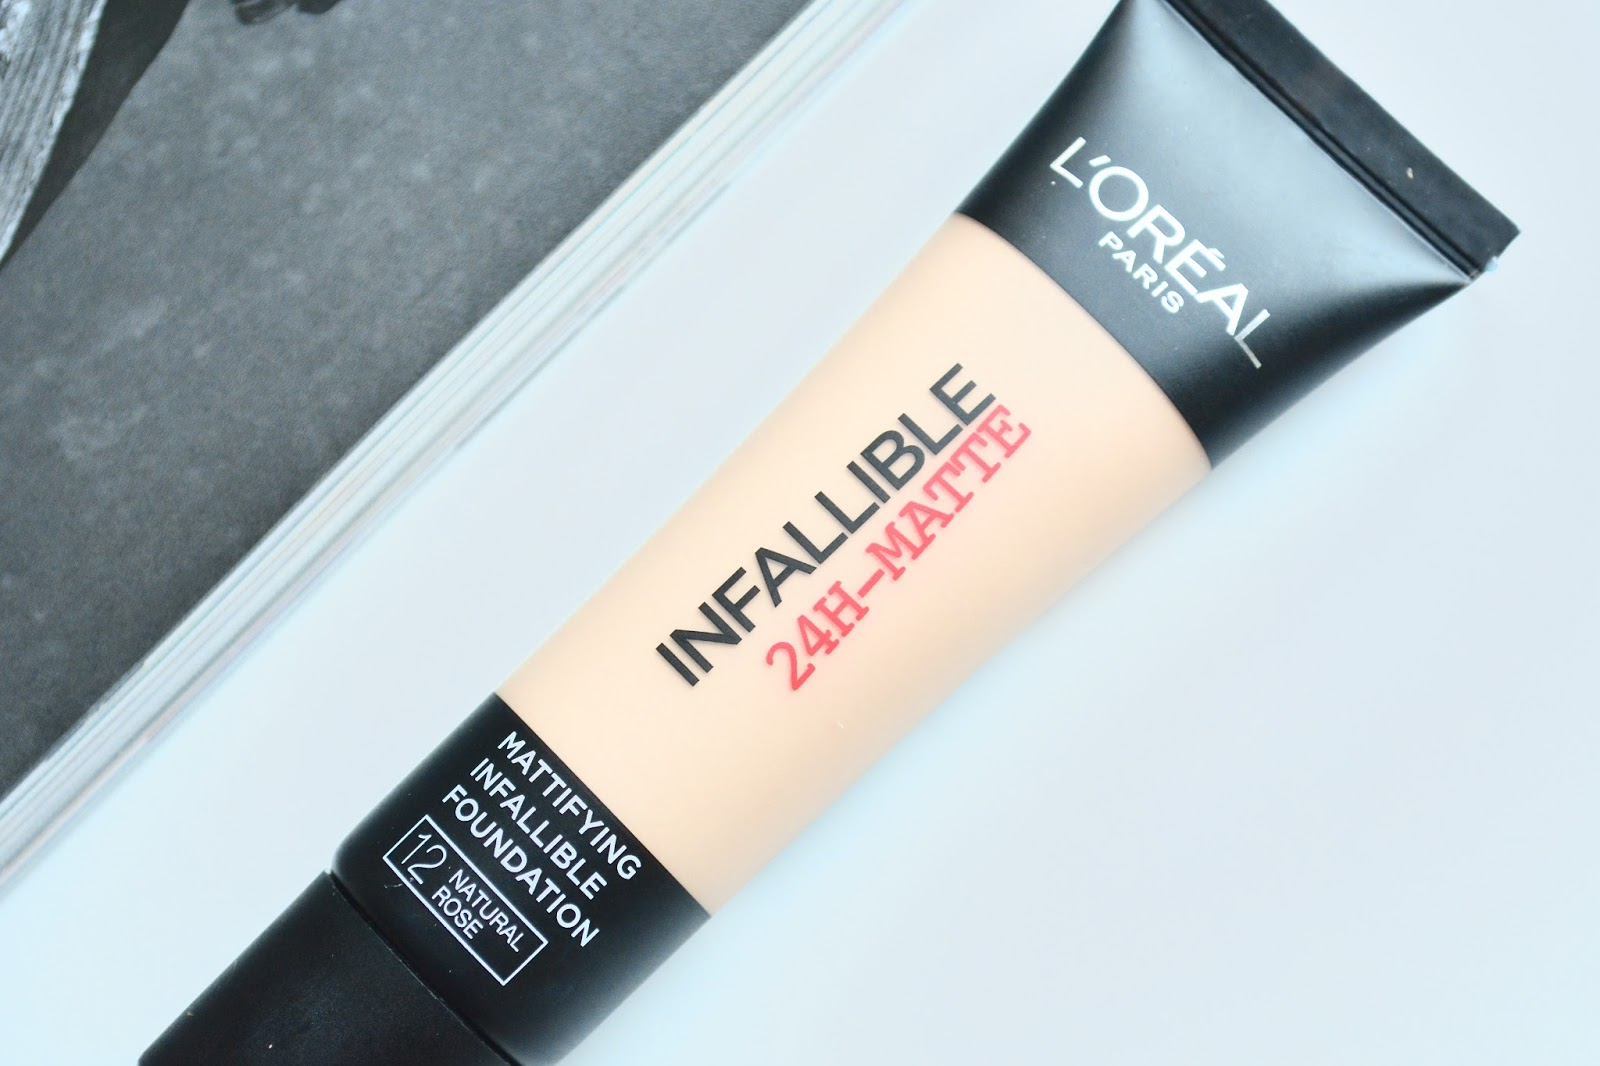 L'Oreal Infallible 24H Matte Foundation